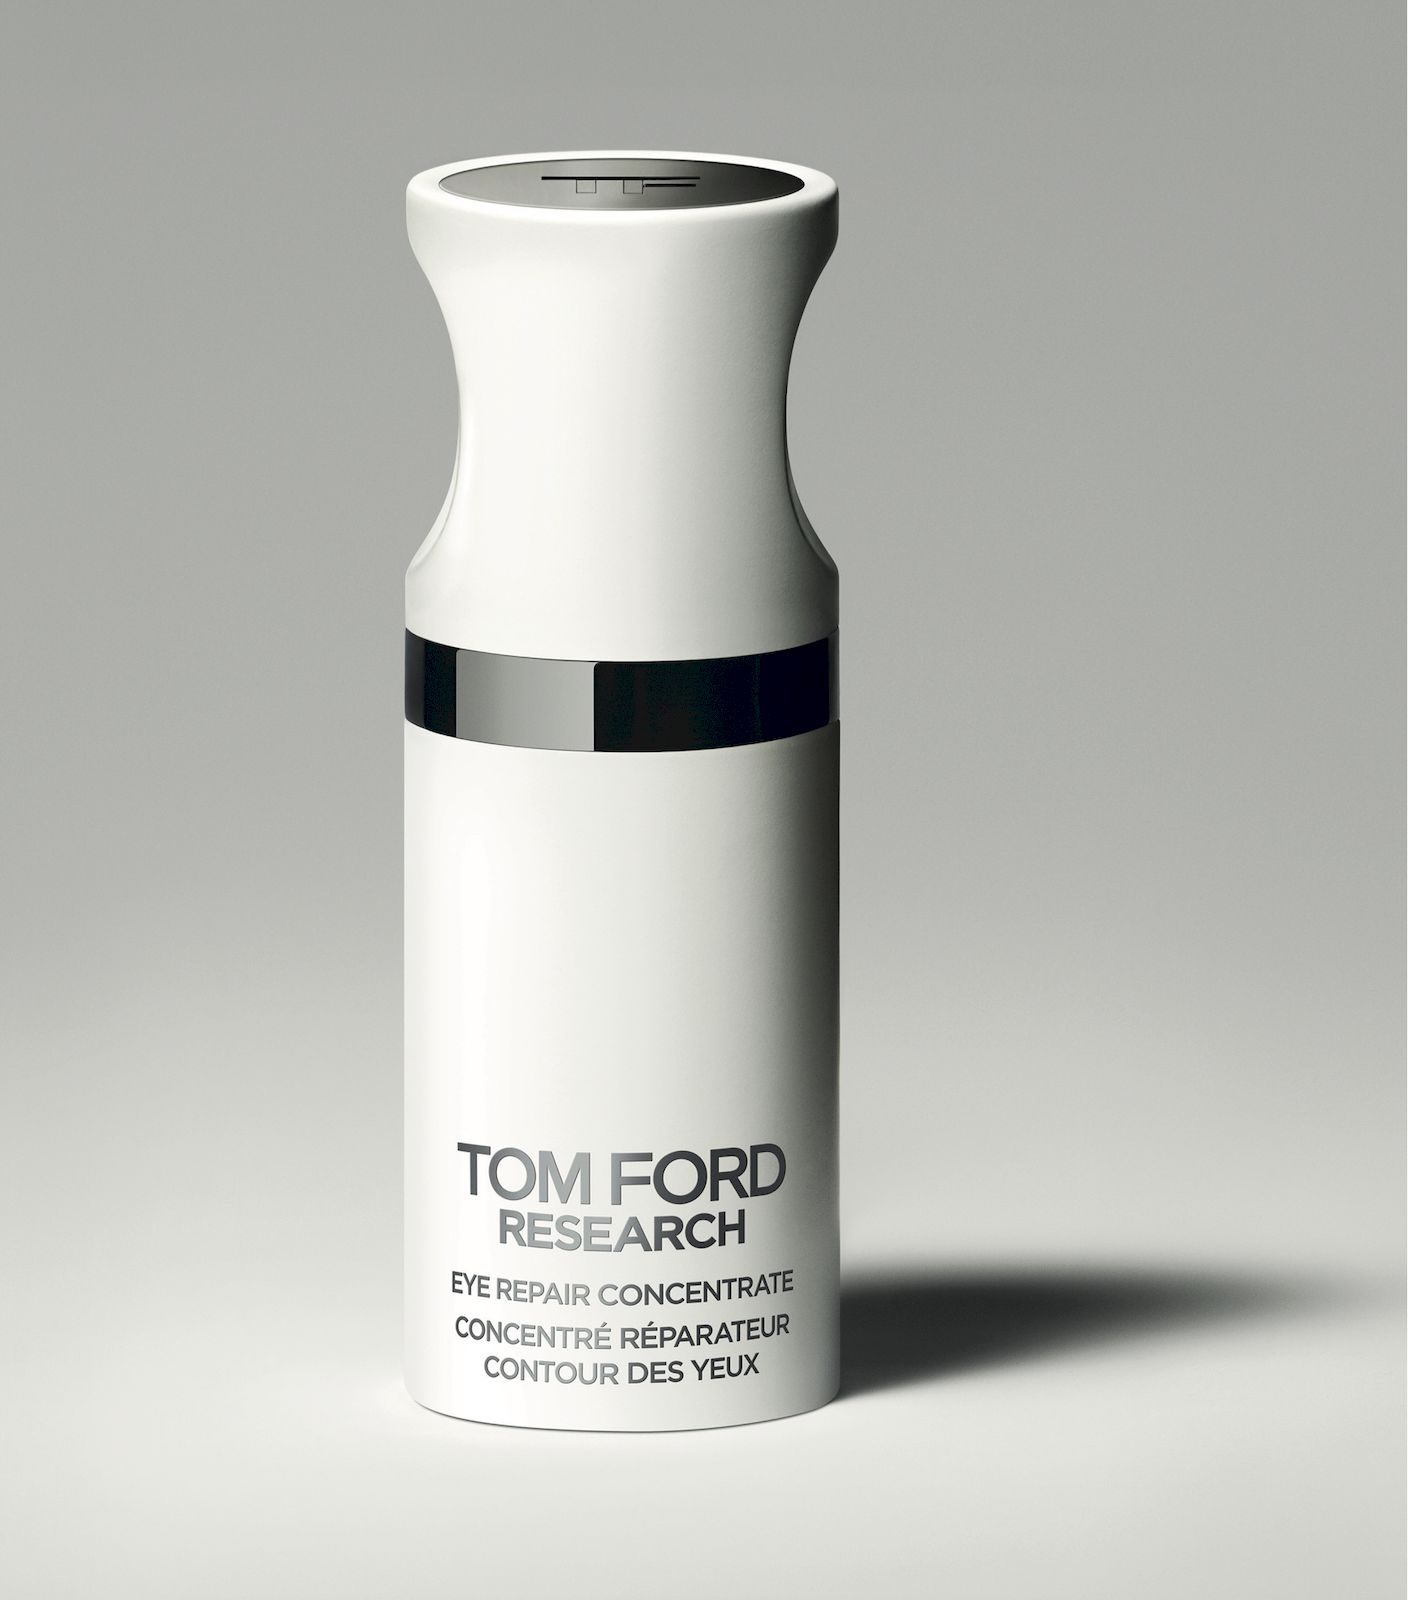 Tom Ford Eye Repair Concentrate